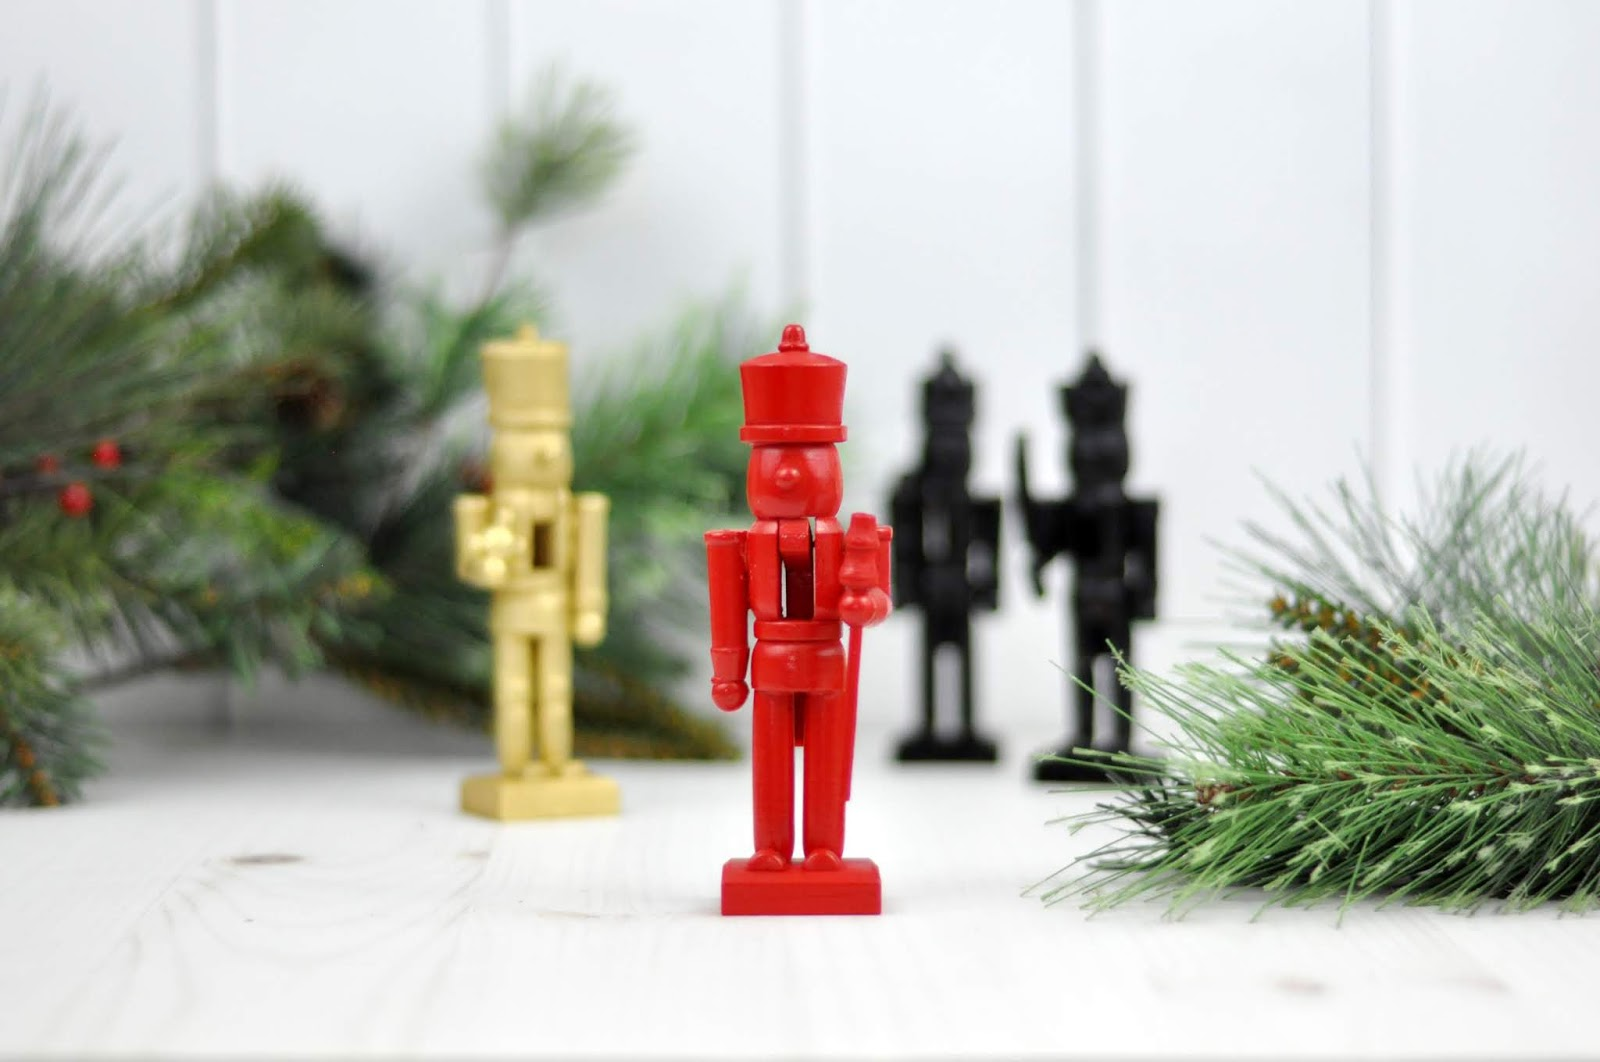 Spray Painted Nutcracker DIY Craft by Jen Gallacher for www.jengallacher.com. #christmascraft #spraypaint #nutcracker #jengallacher